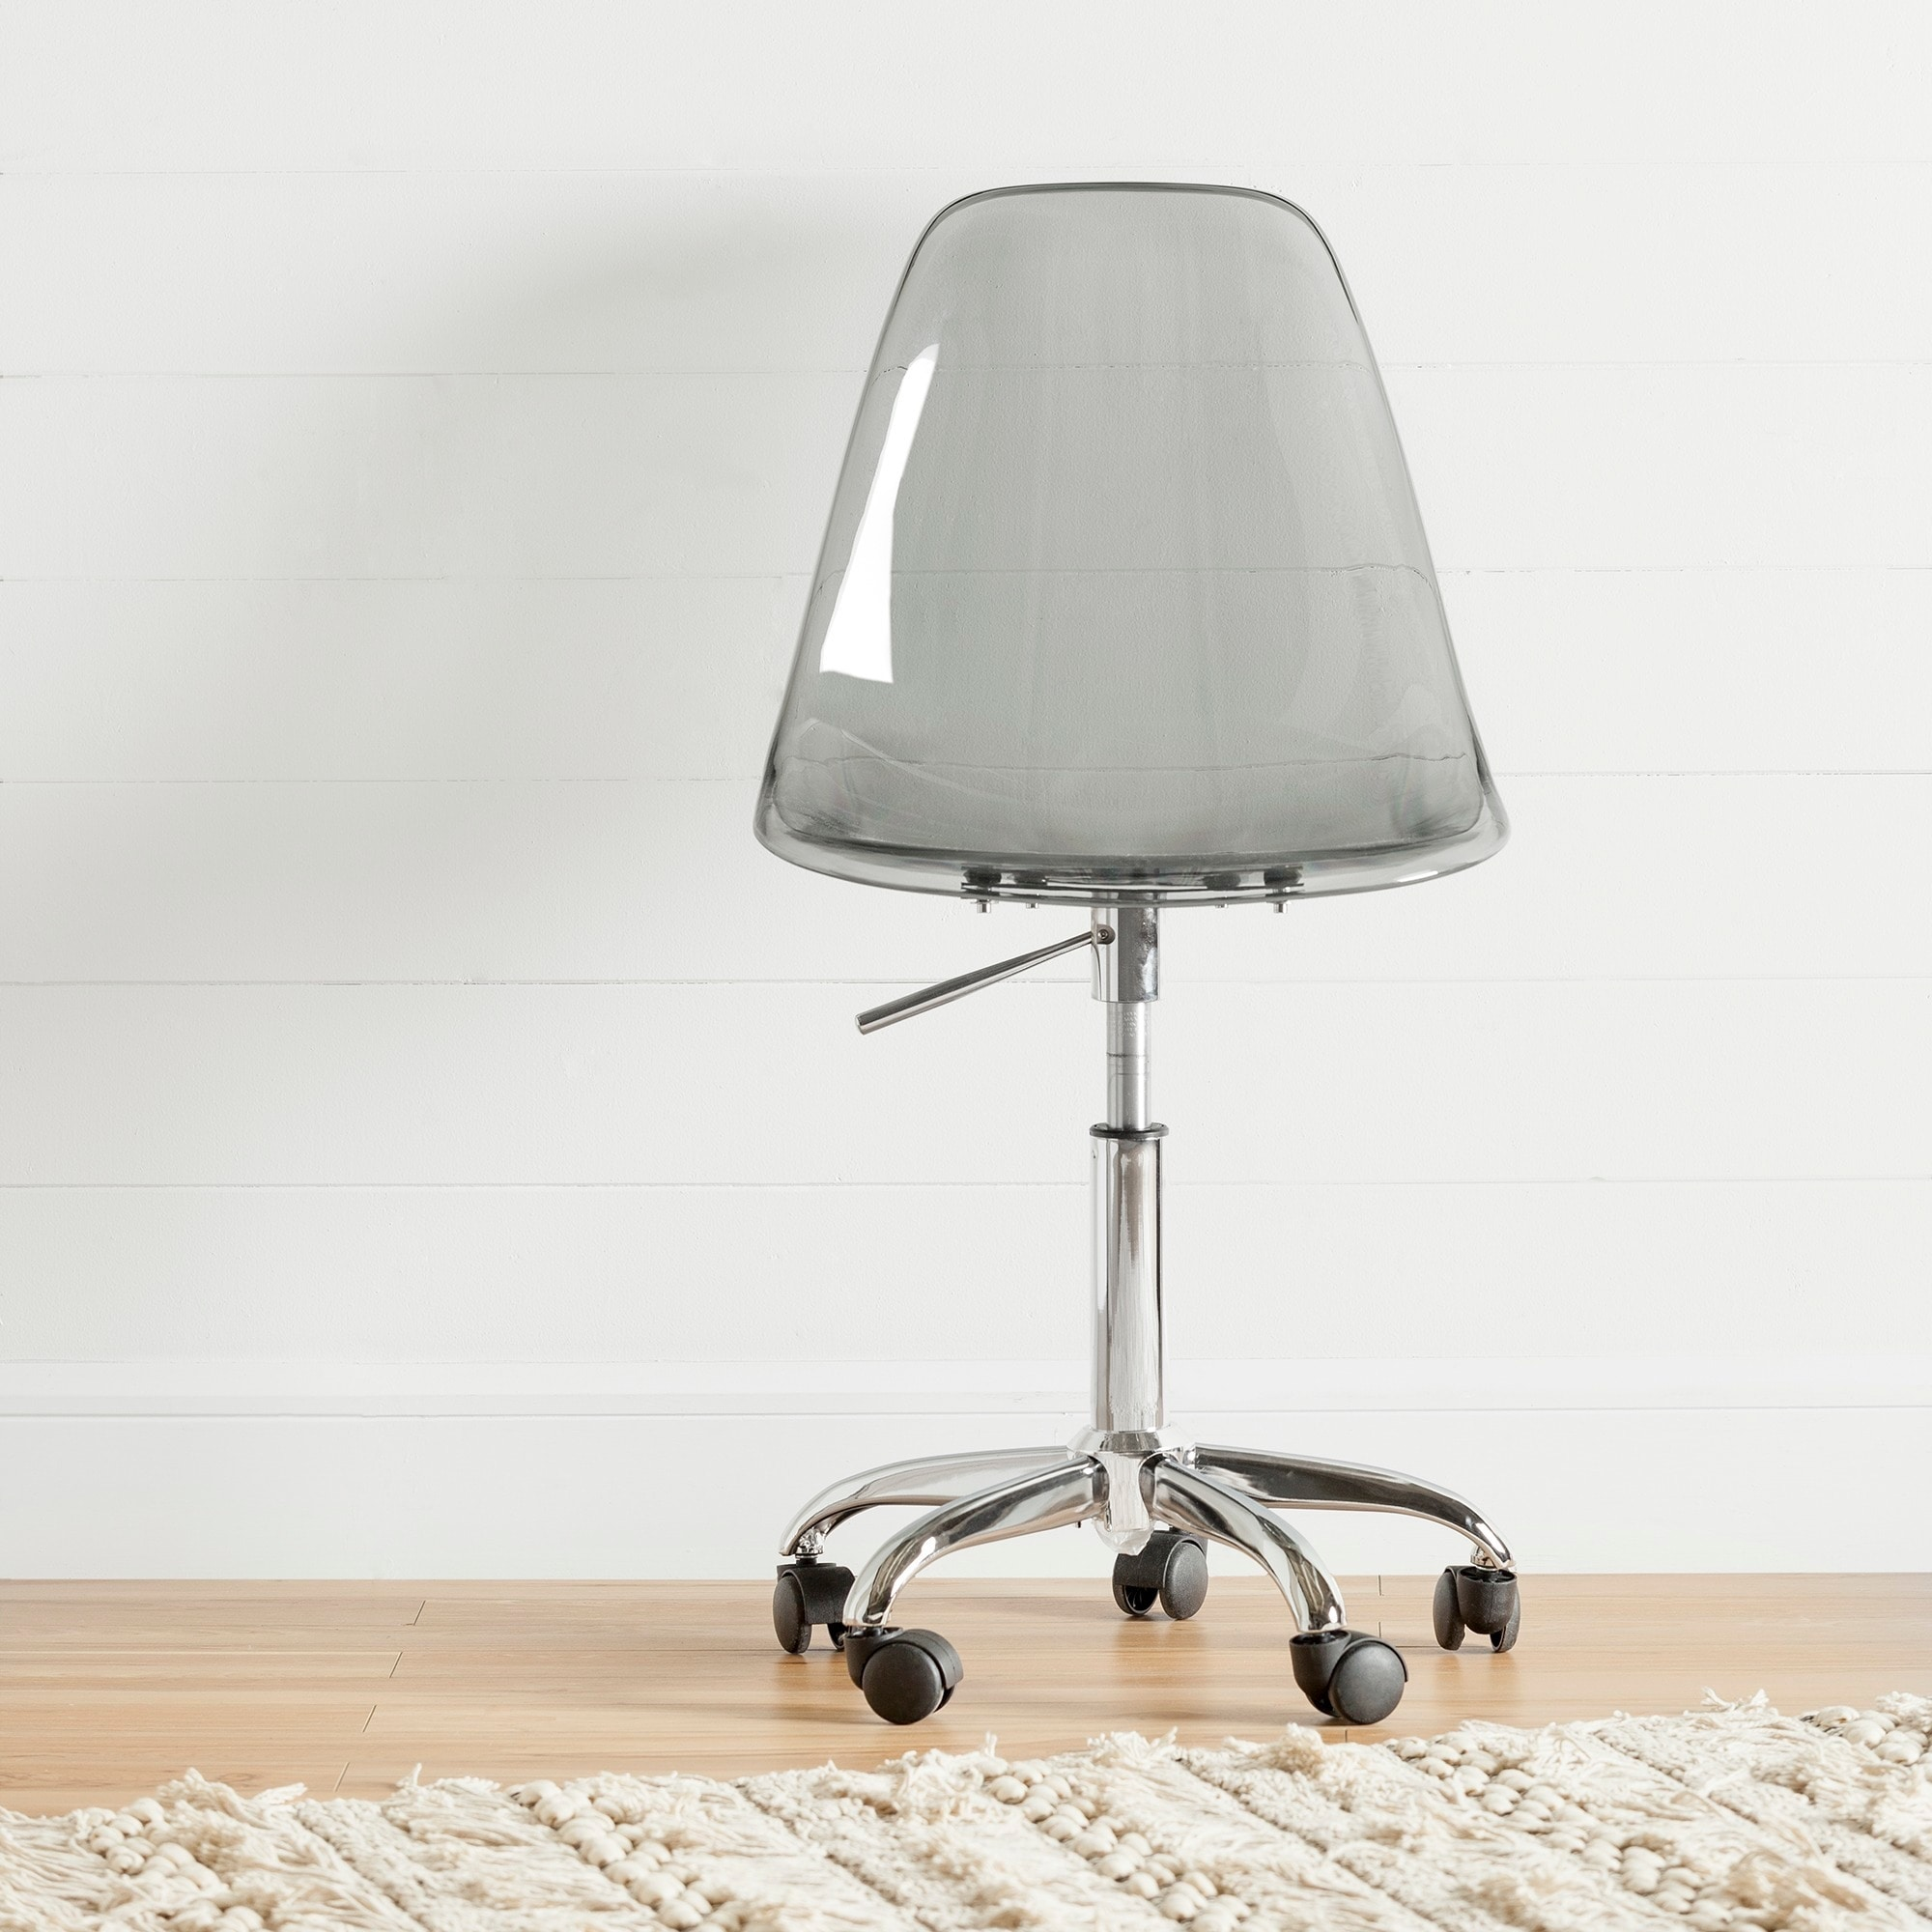 acrylic office chairs. South Shore Clear Acrylic Office Chair With Wheels - Free Shipping Today Overstock.com 18424727 Chairs L